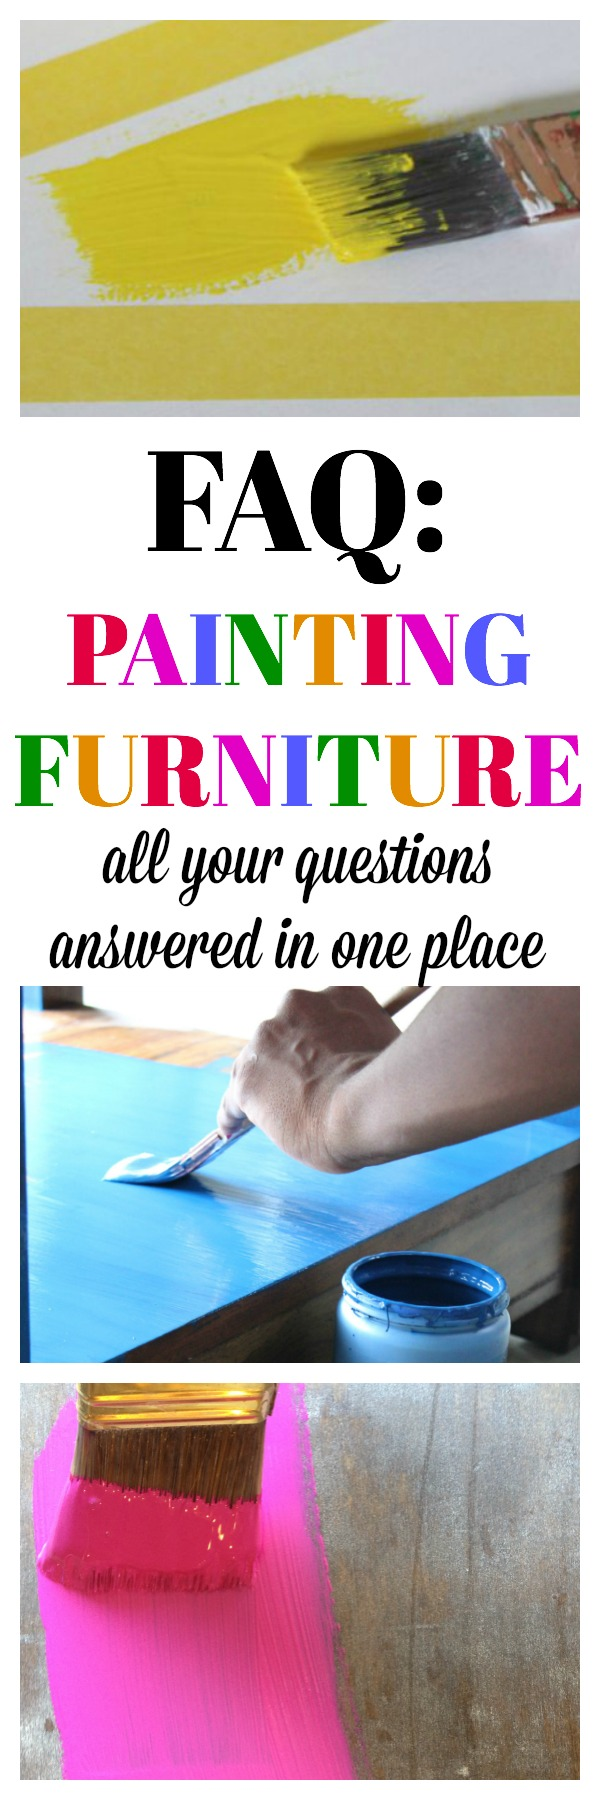 painting furniturePrepping Furniture to Paint When to Sand When to Degloss When